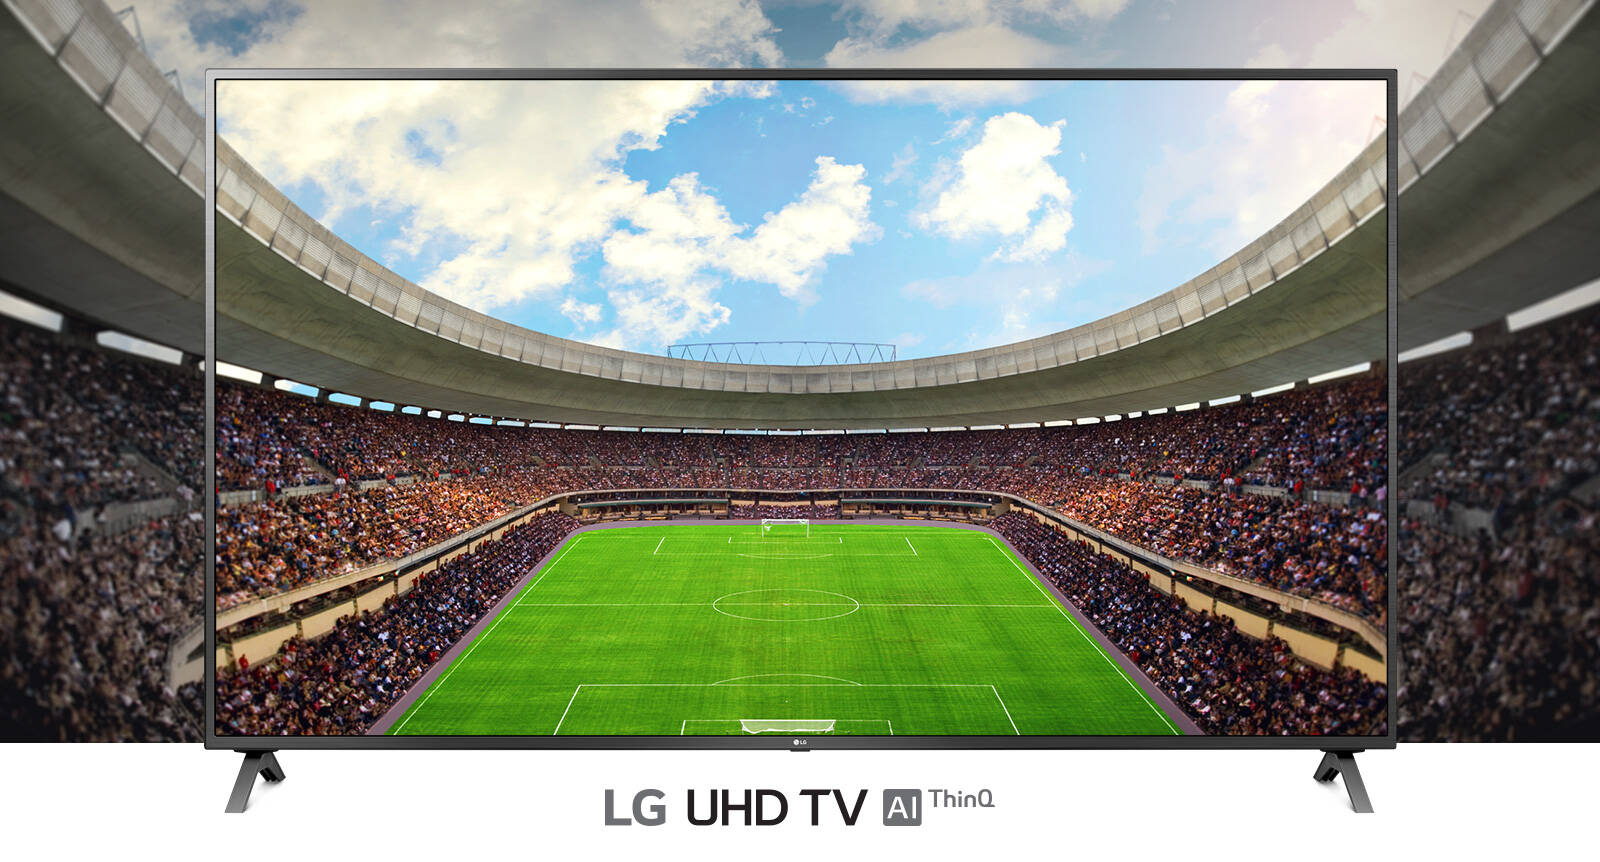 Panoramic view of a football stadium full of spectators shown inside a TV.